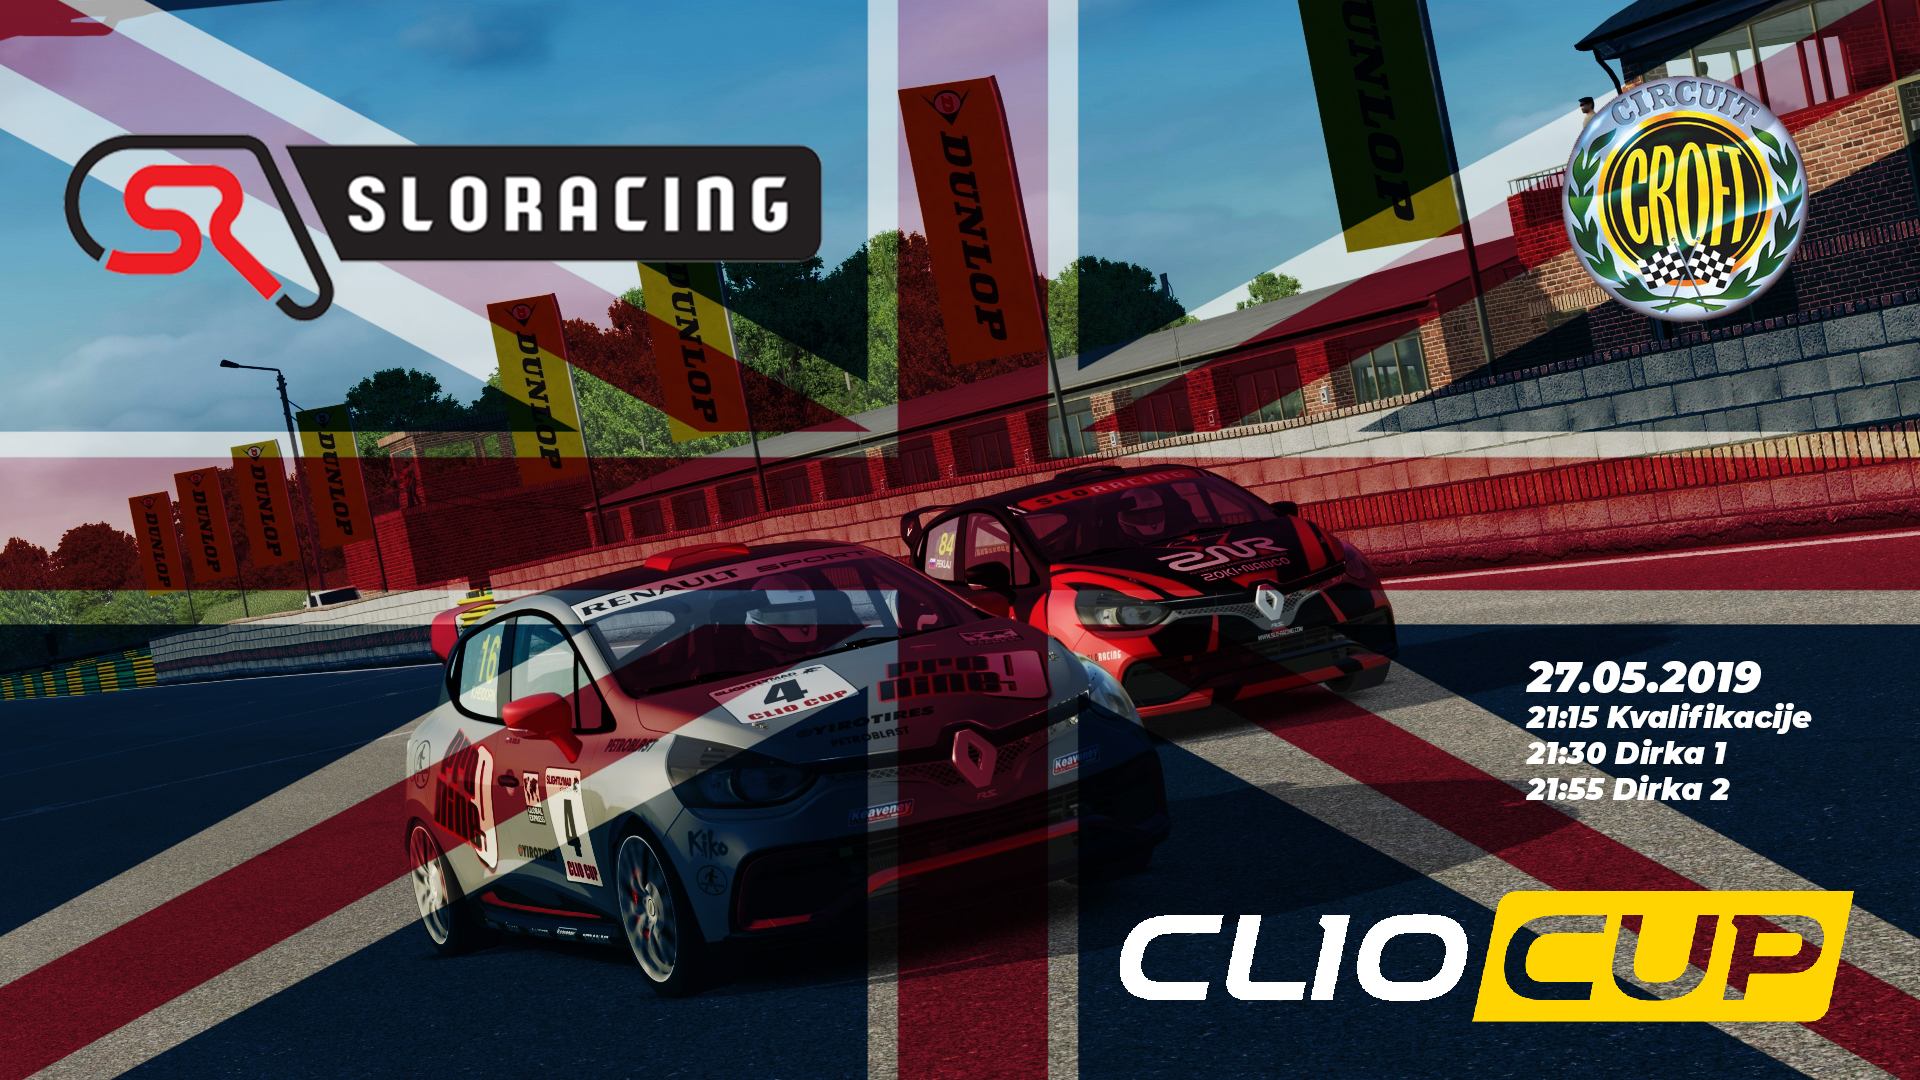 cliocup.jpg